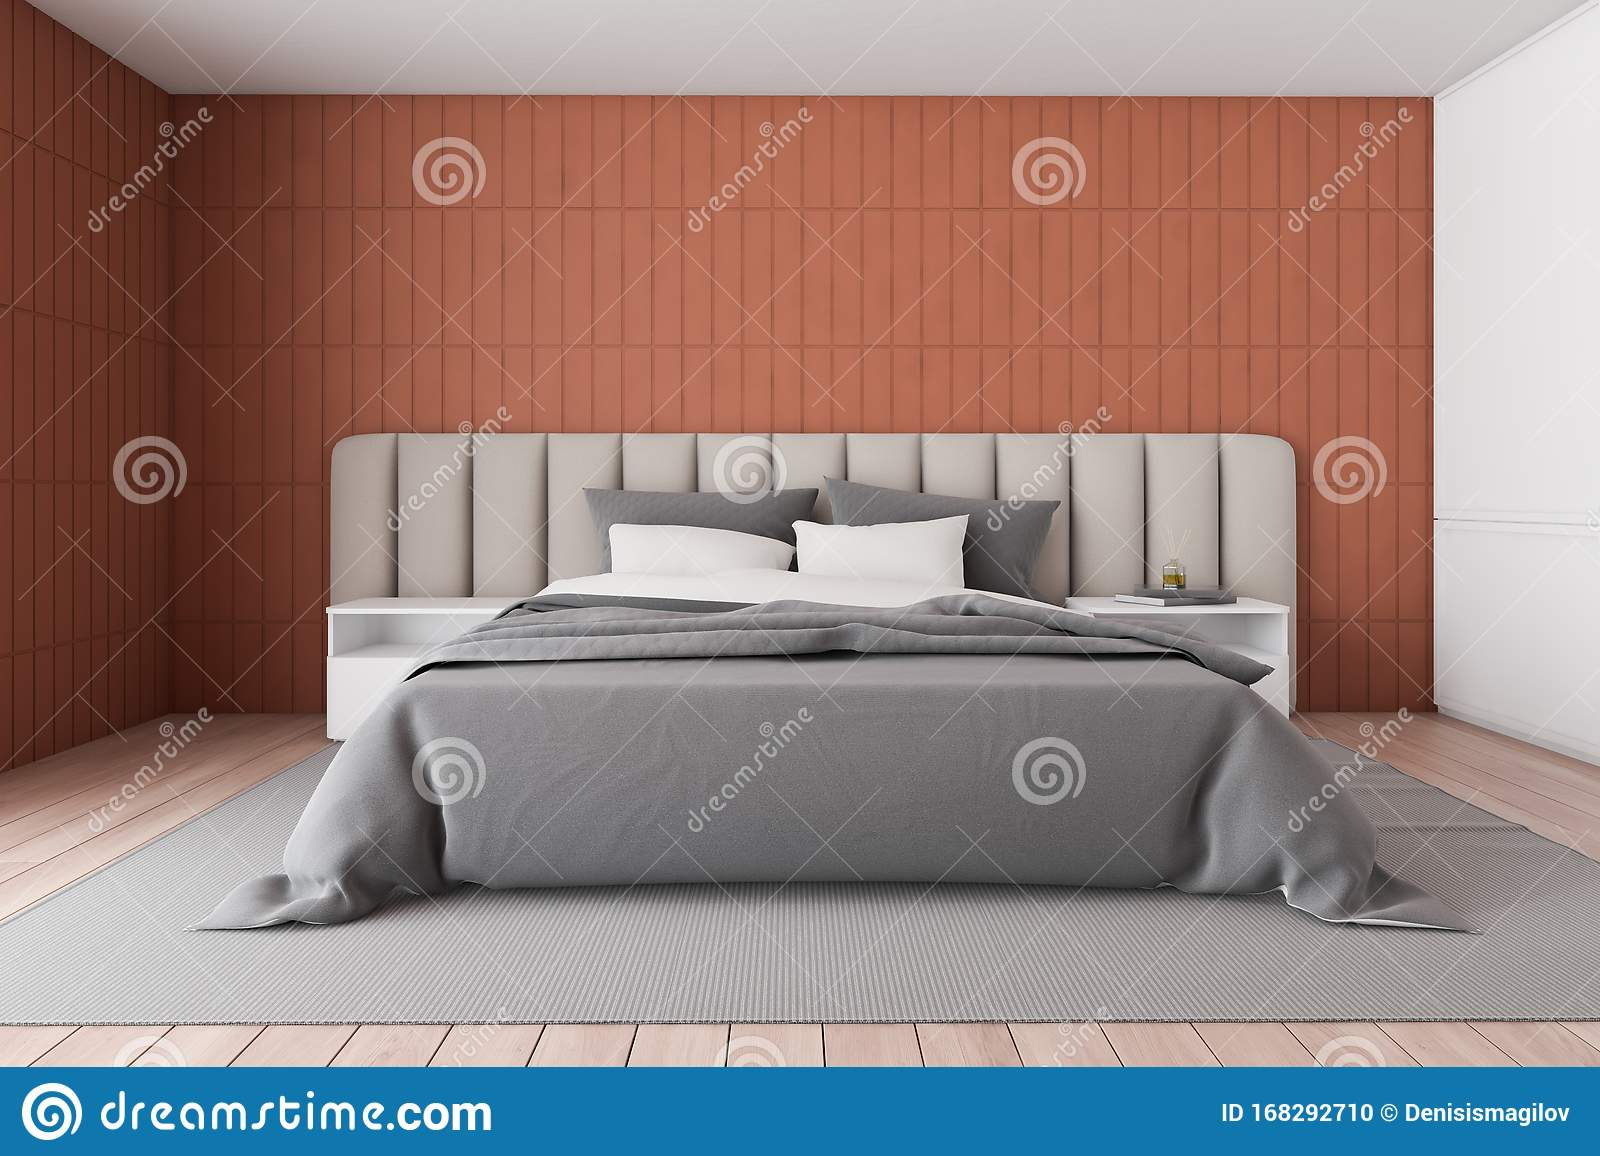 Front View Of Orange Master Bedroom Stock Illustration Illustration Of Comfortable Investment 168292710